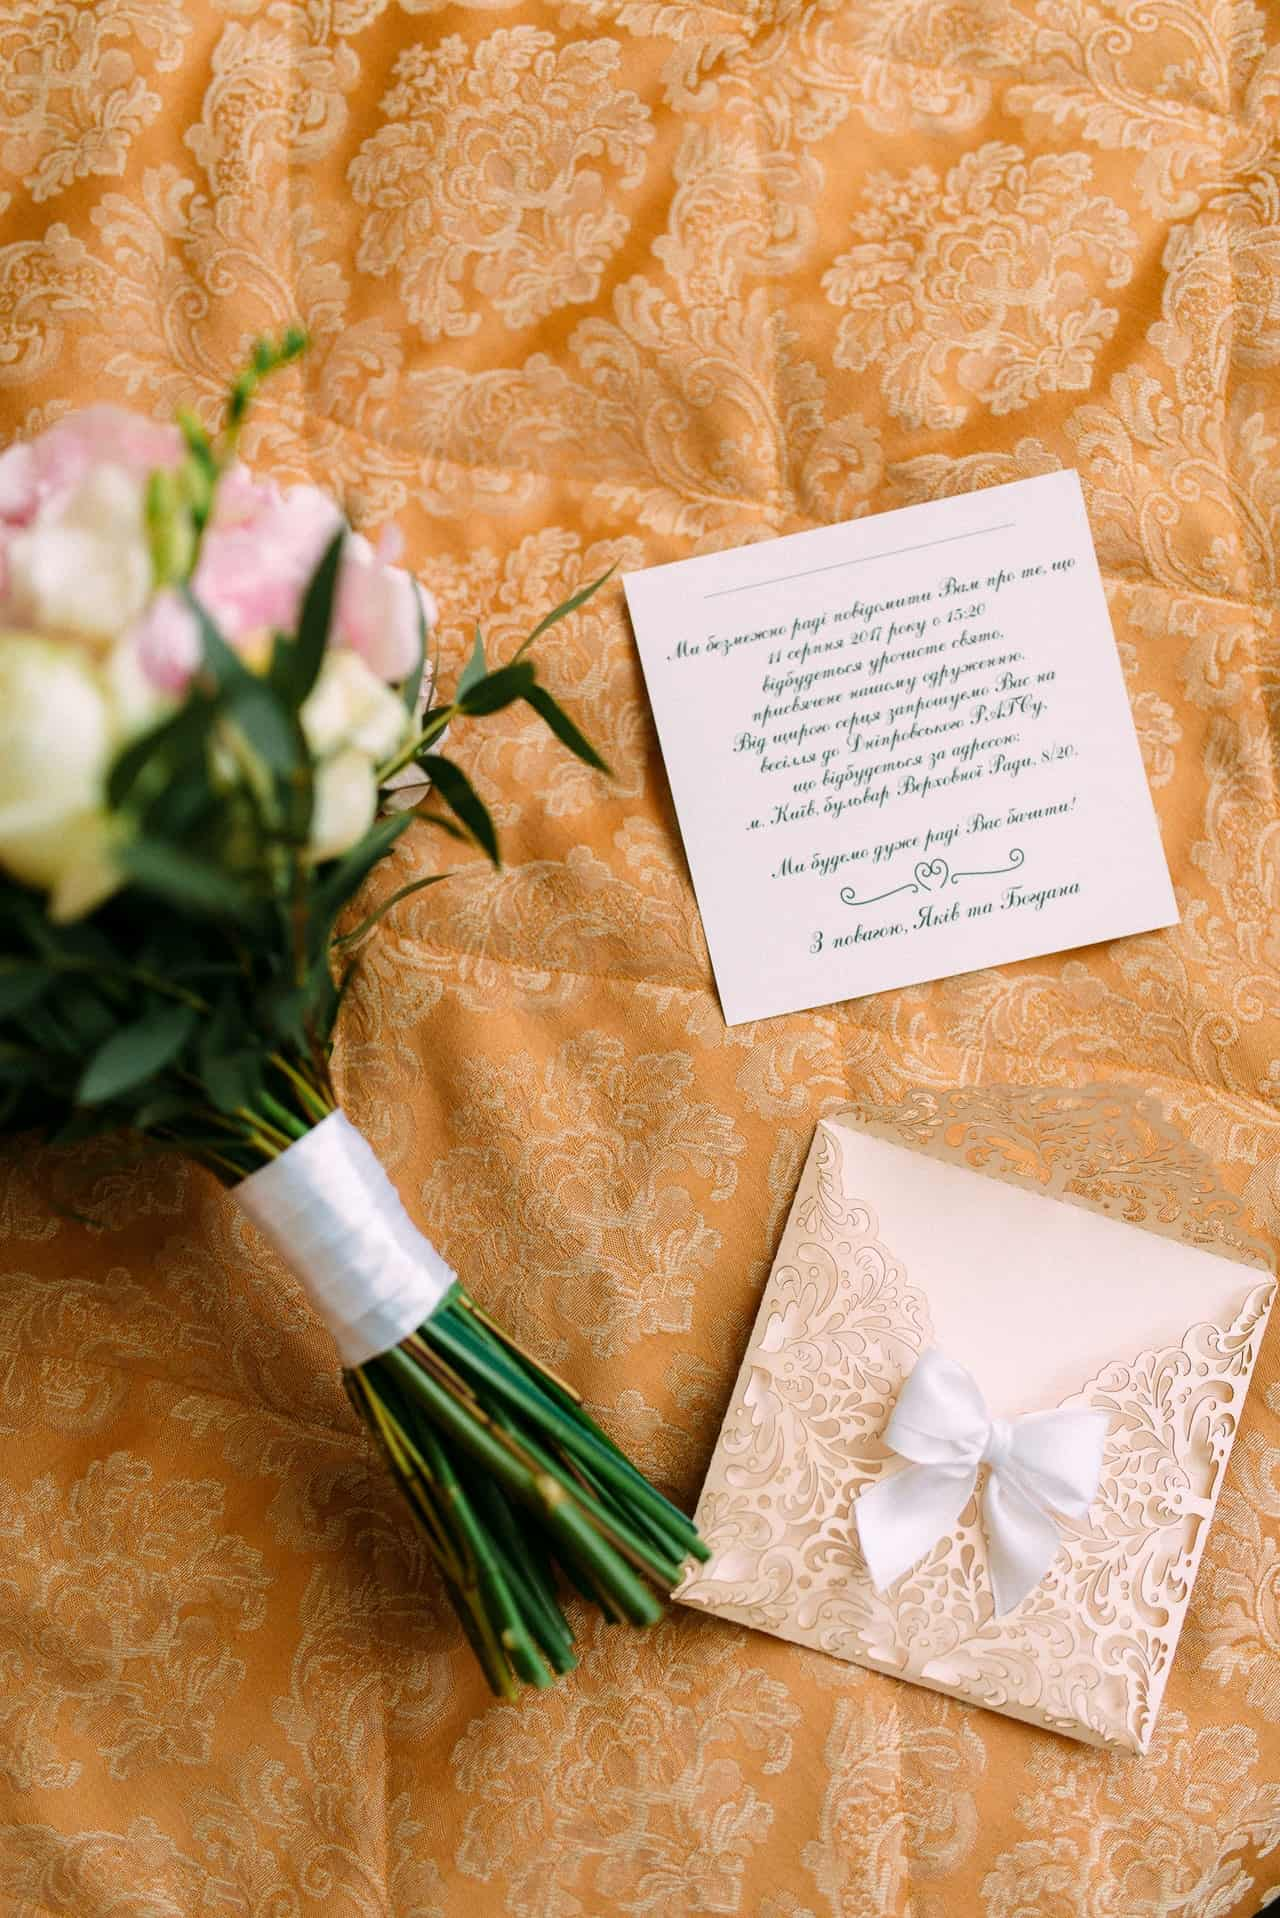 wedding invitation card and letter beside a bouquet of flowers